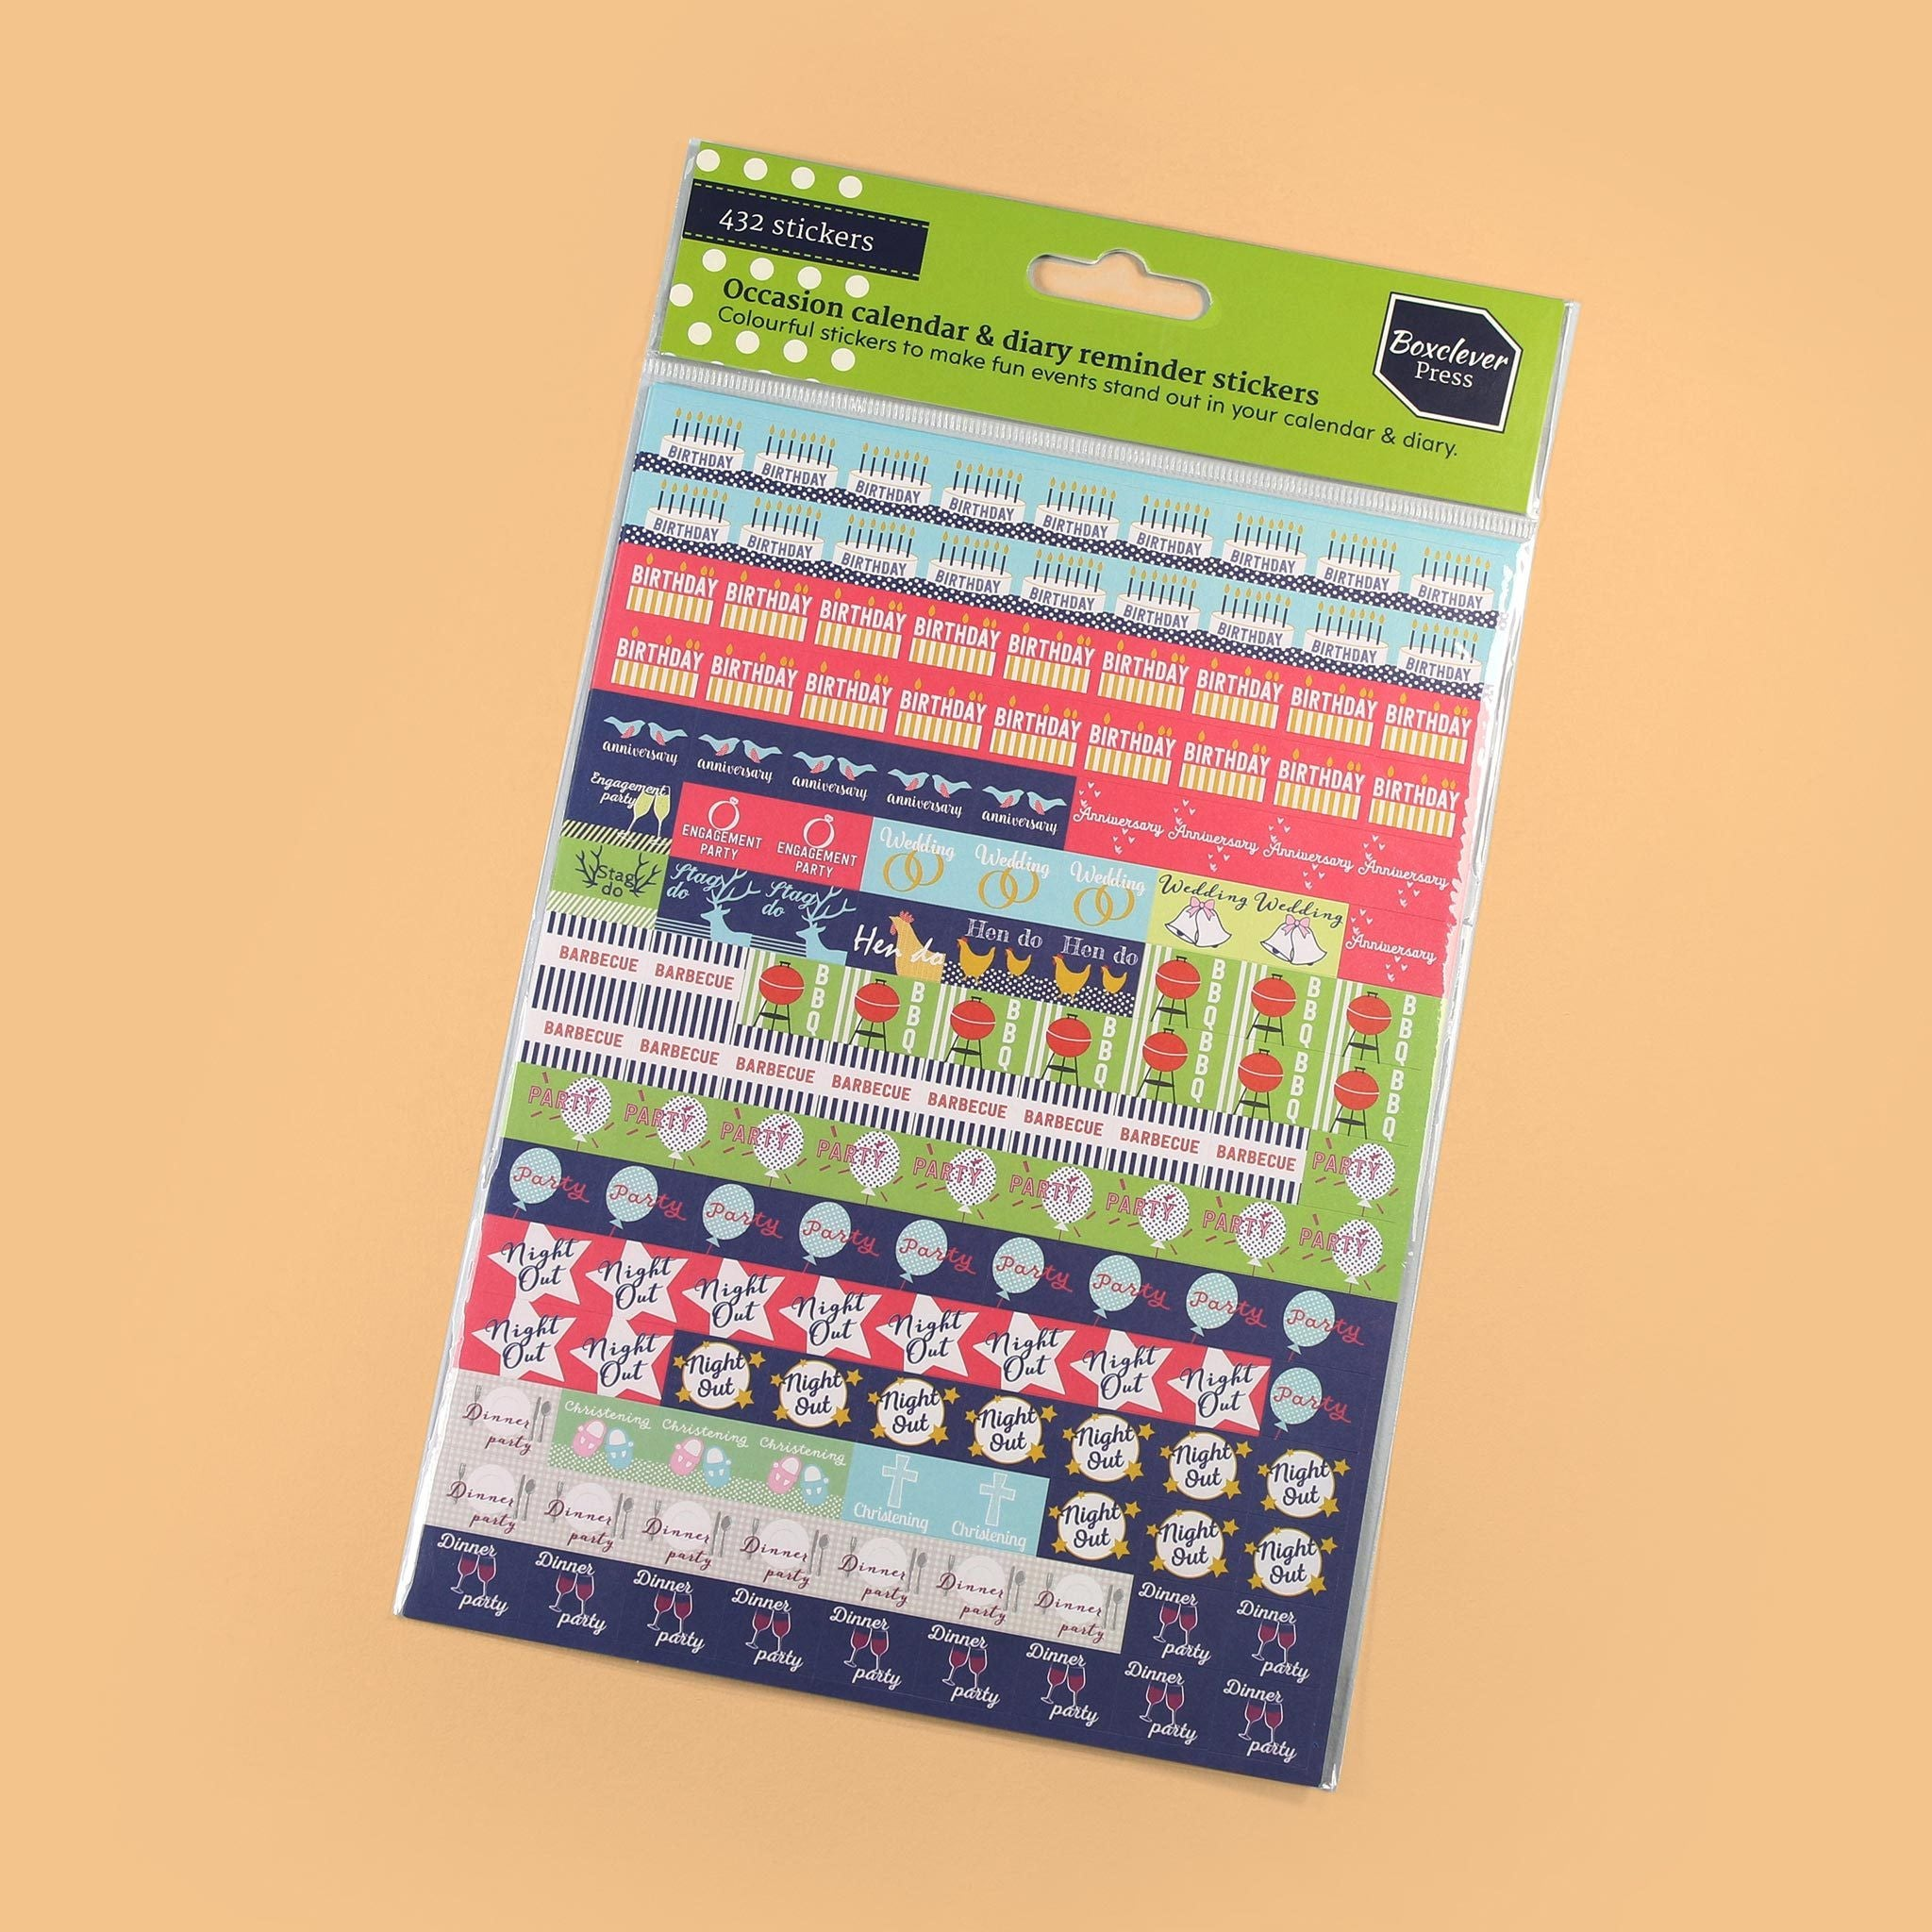 An image of Occasions Stickers I Diary, planner and calendar I Boxclever Press